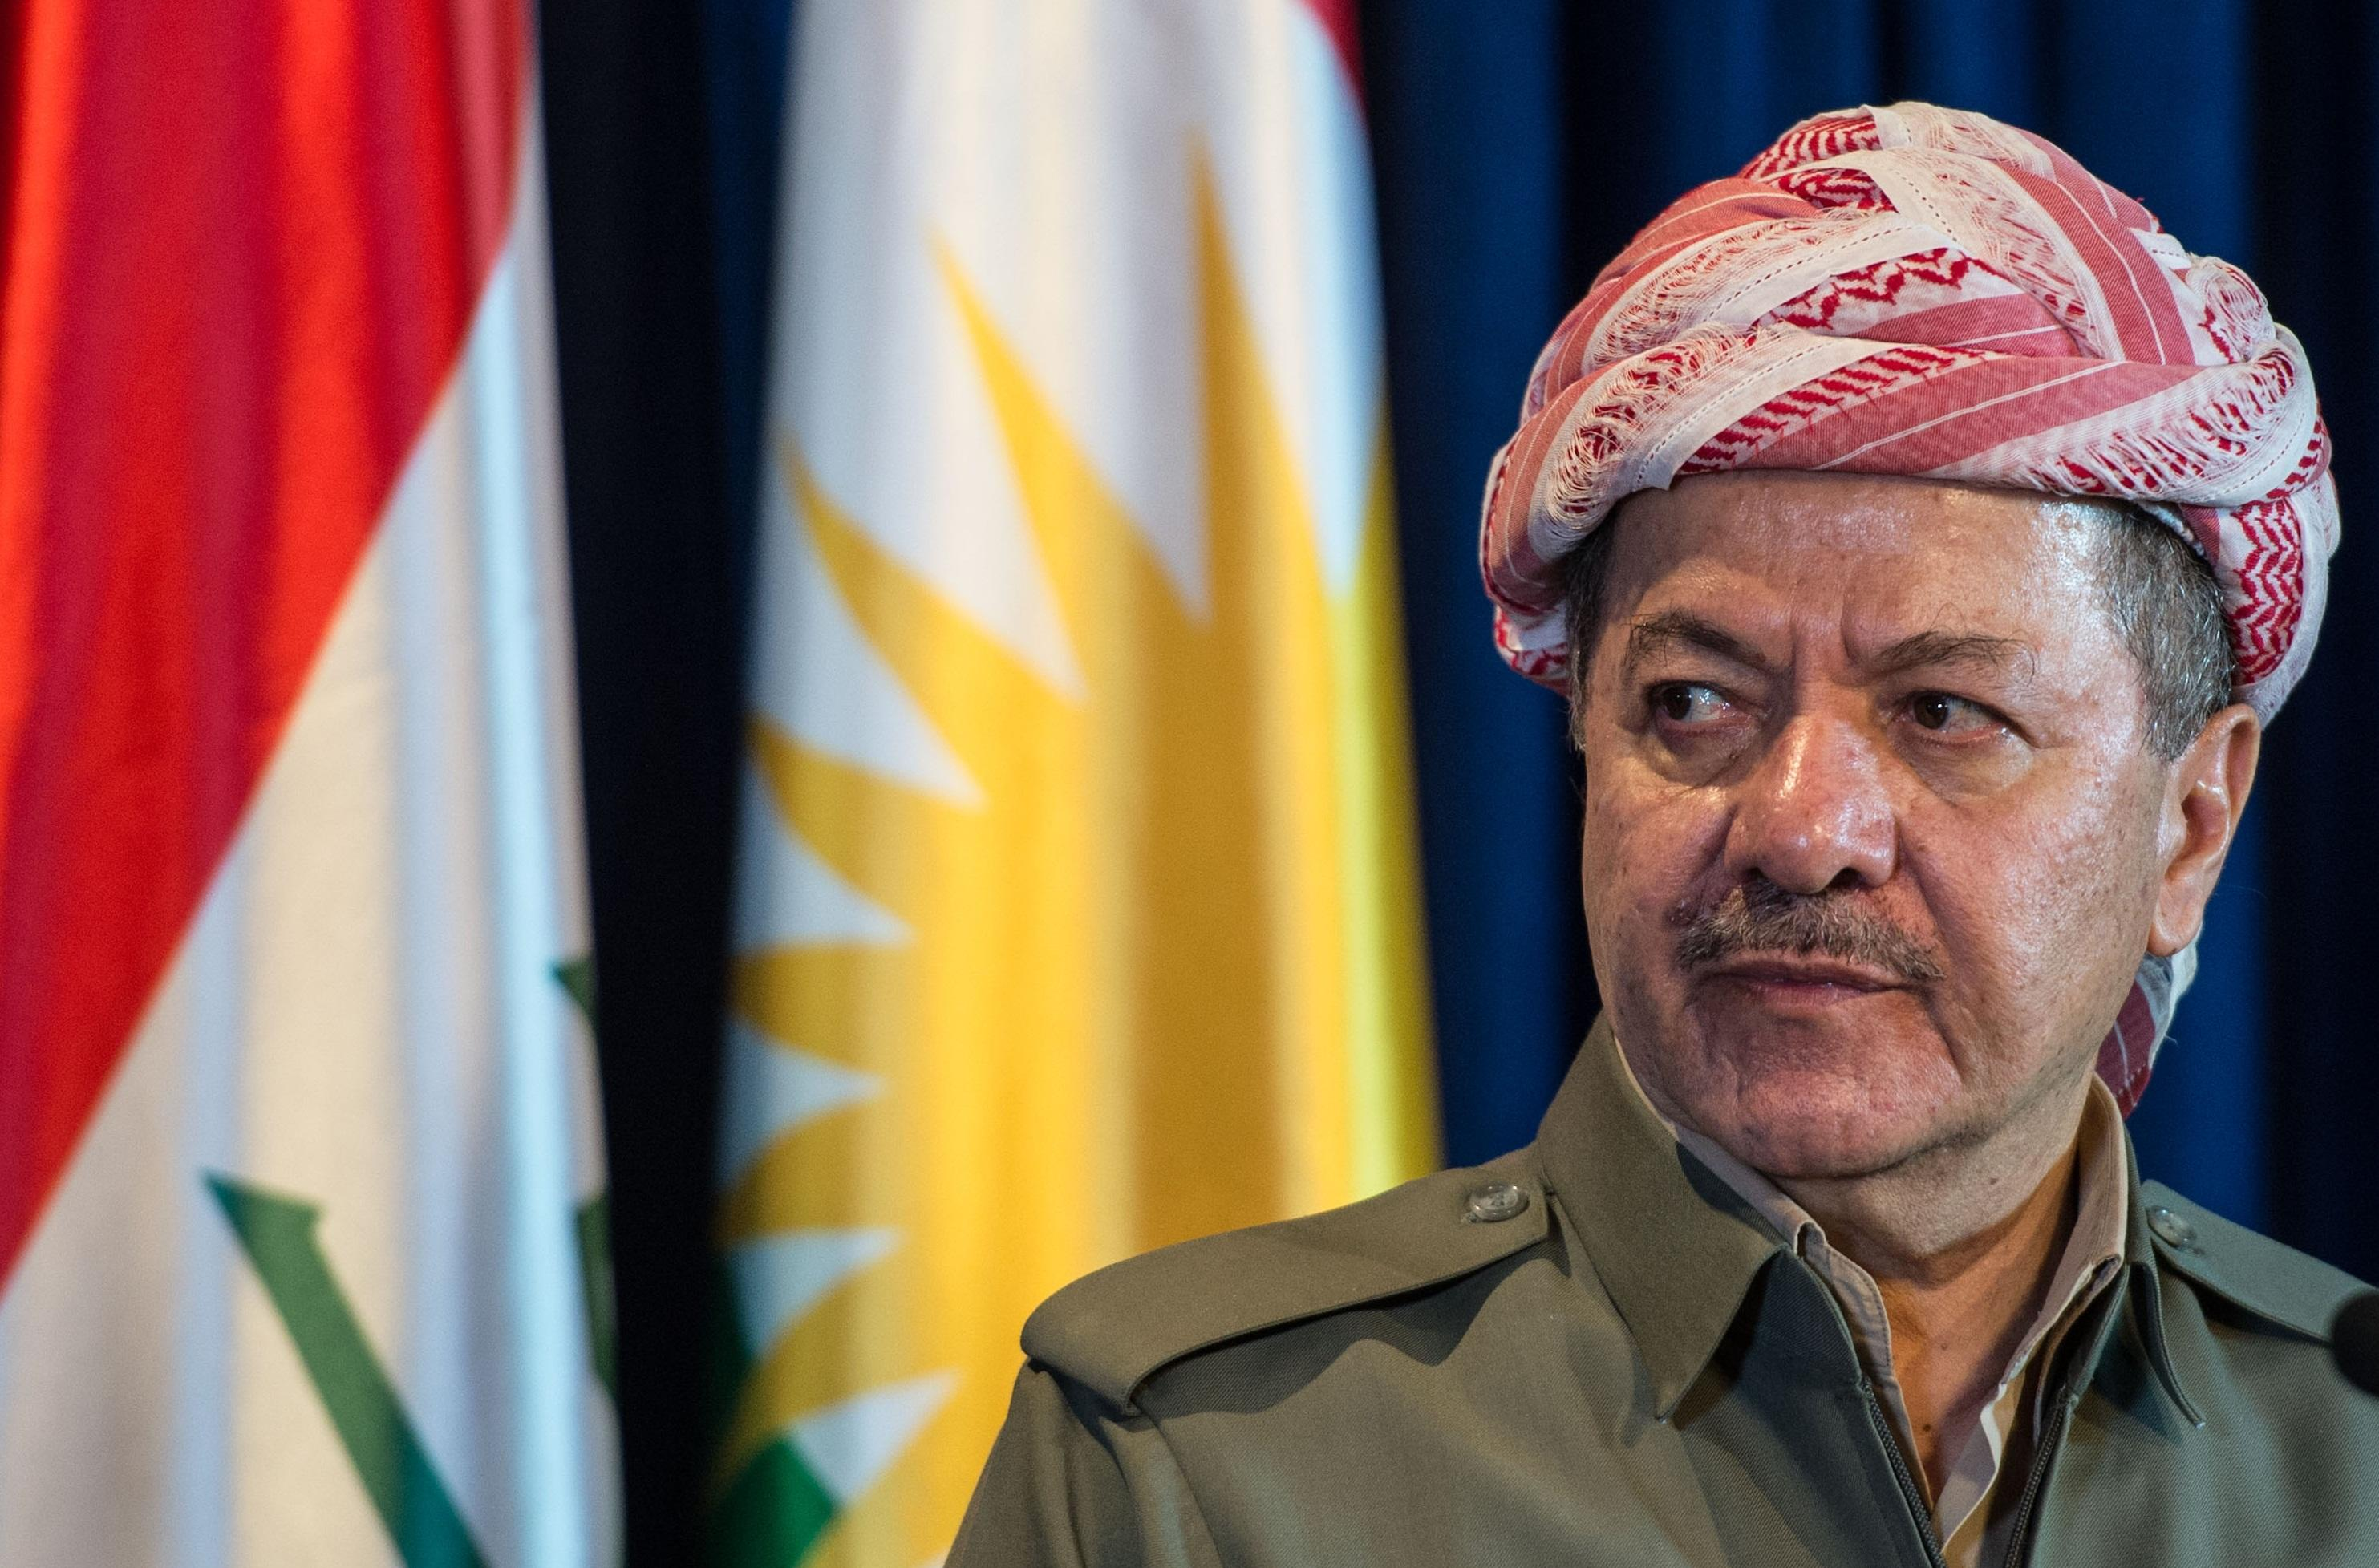 Who Is Stopping Kurdish Leaders From Visiting the U.S.?